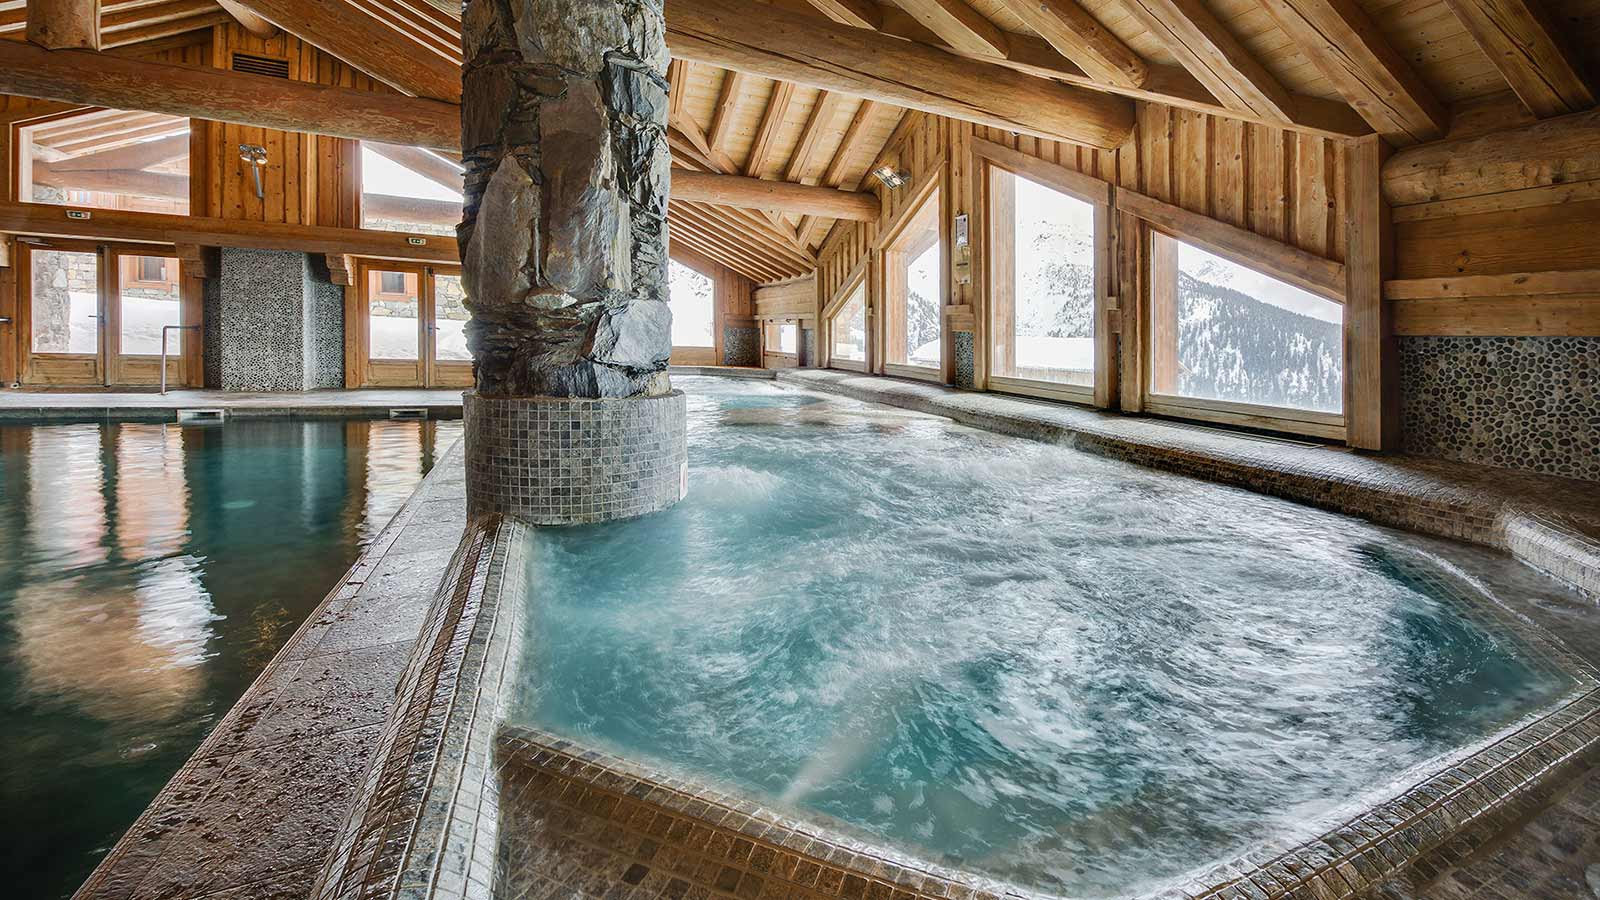 Pool and wellness - Les Cimes Blanches, La Rosiere, France